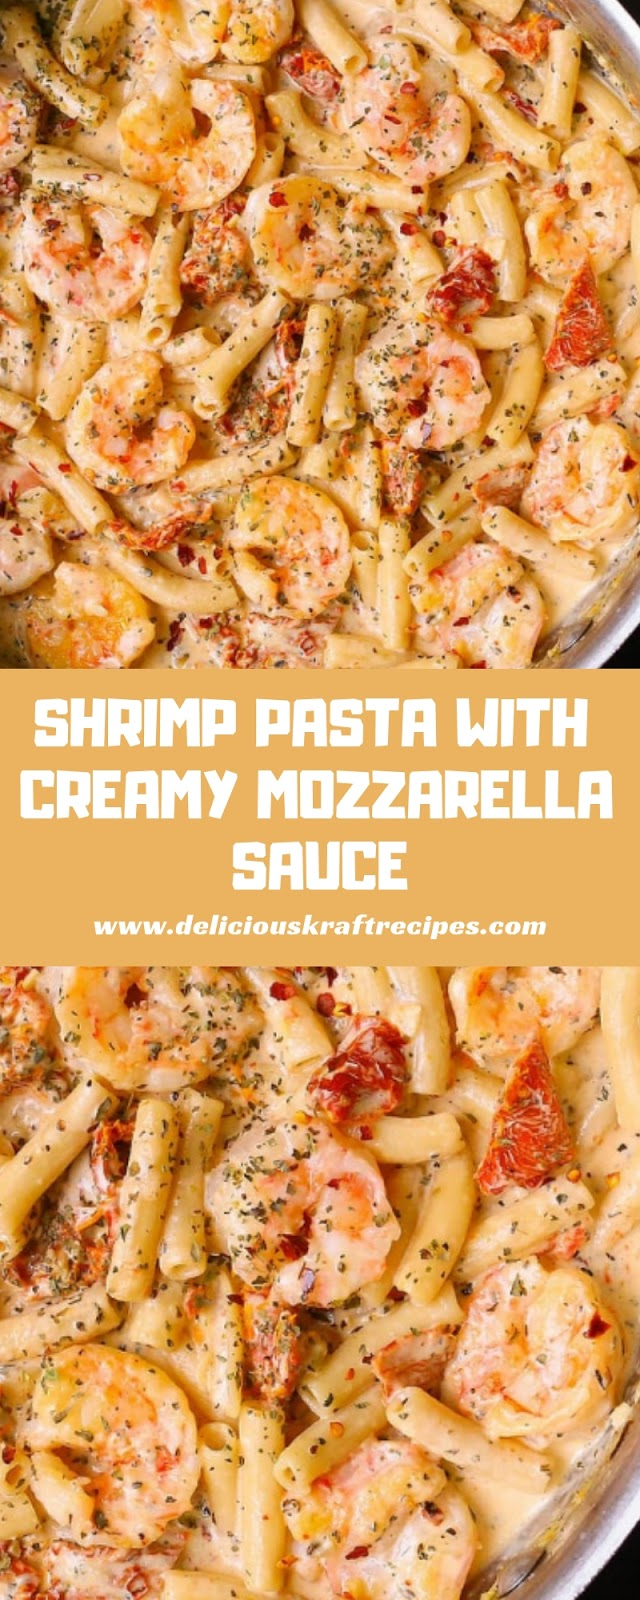 SHRIMP PASTA WITH CREAMY MOZZARELLA SAUCE